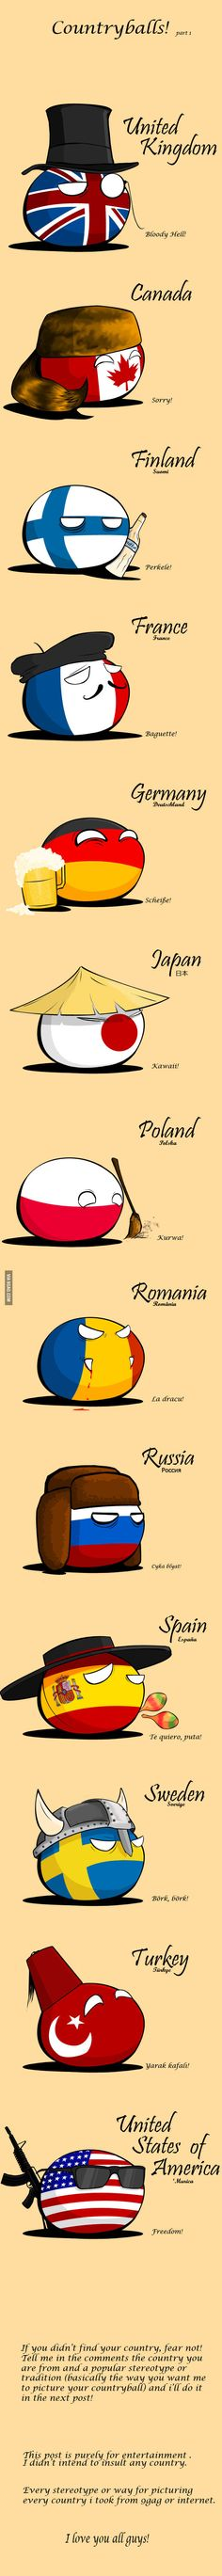 I heard you like countryballs!